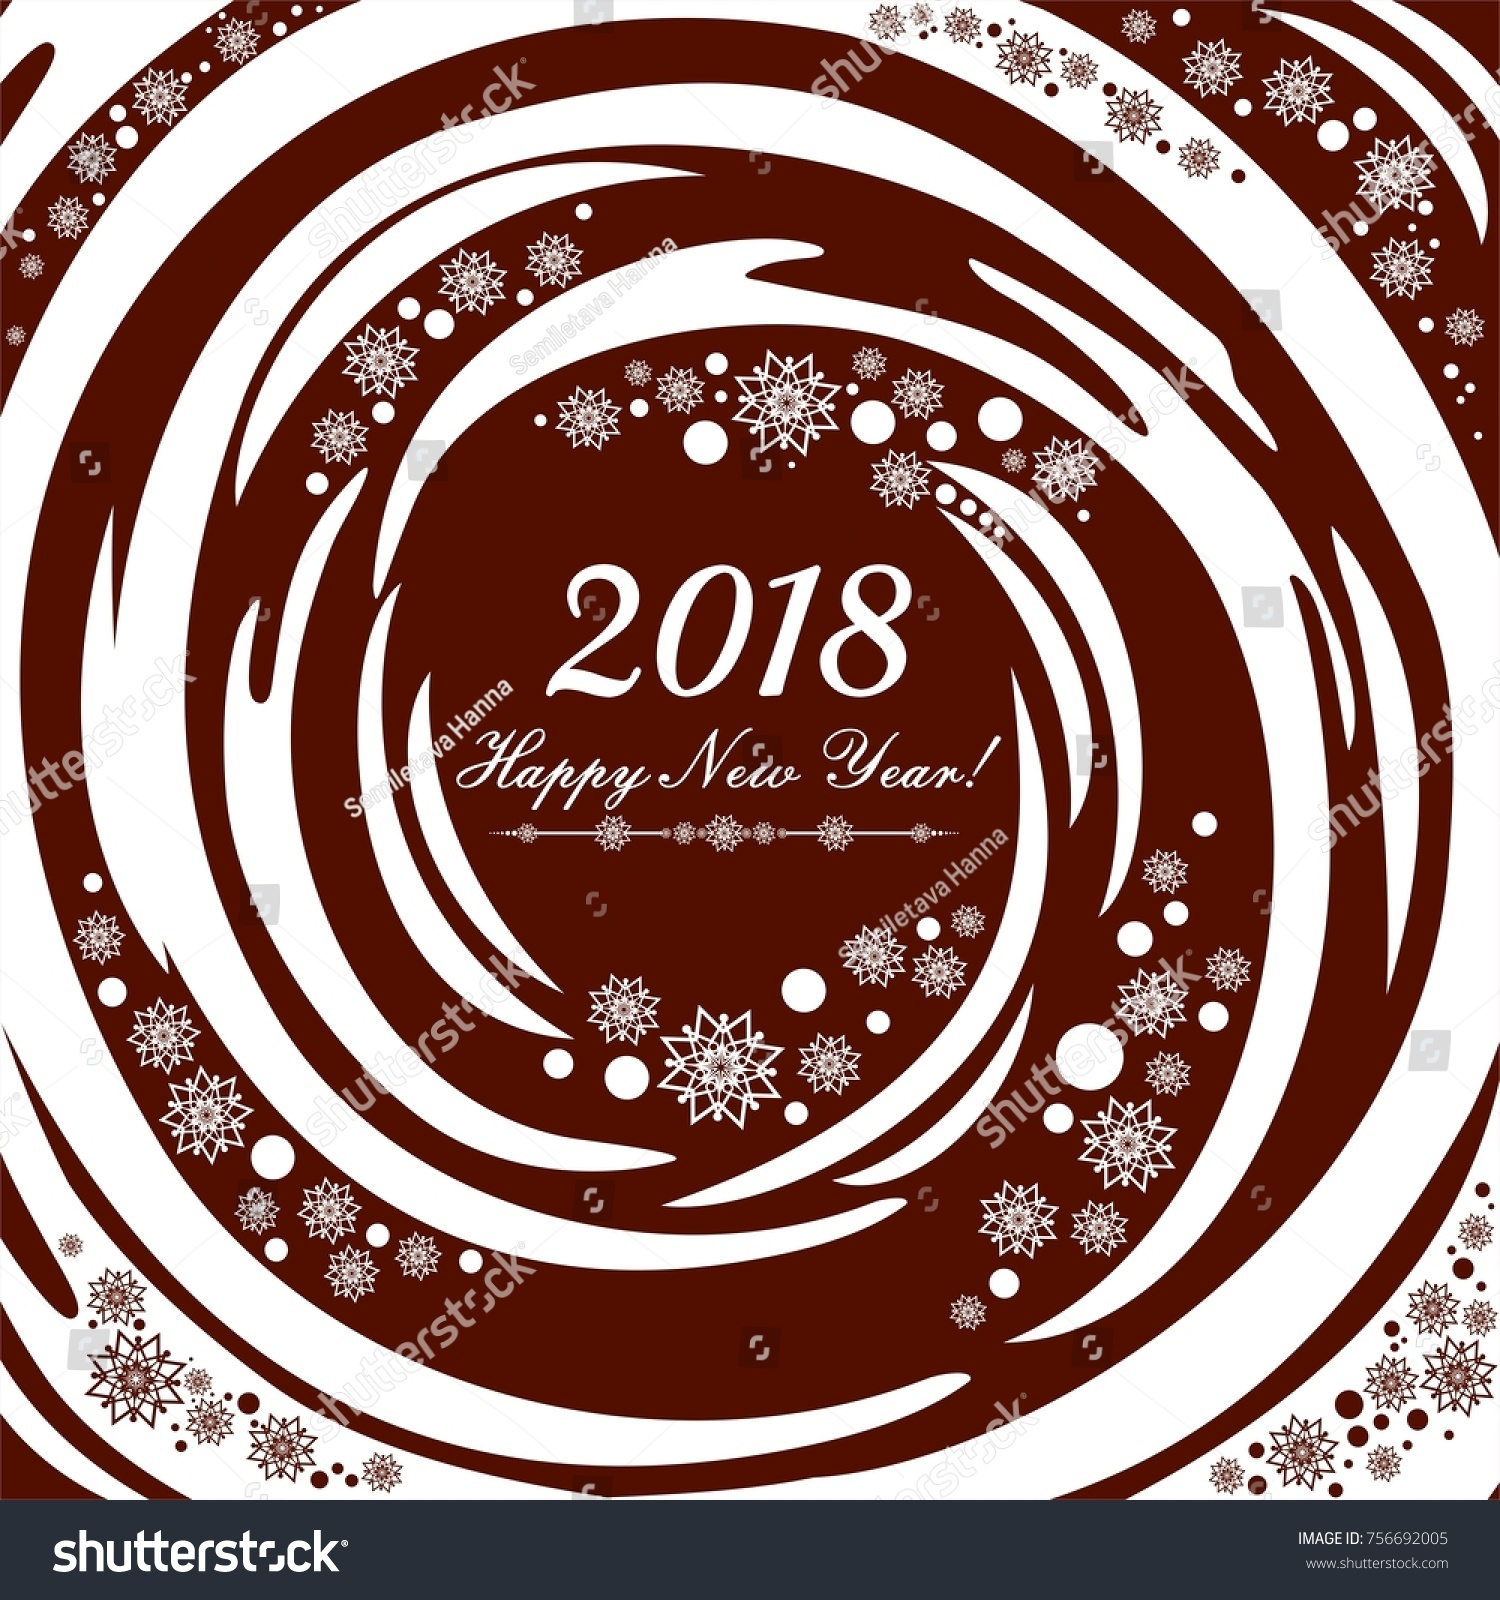 happy new year 2018 greeting card celebration chocolate background with christmas snowflakes and place for